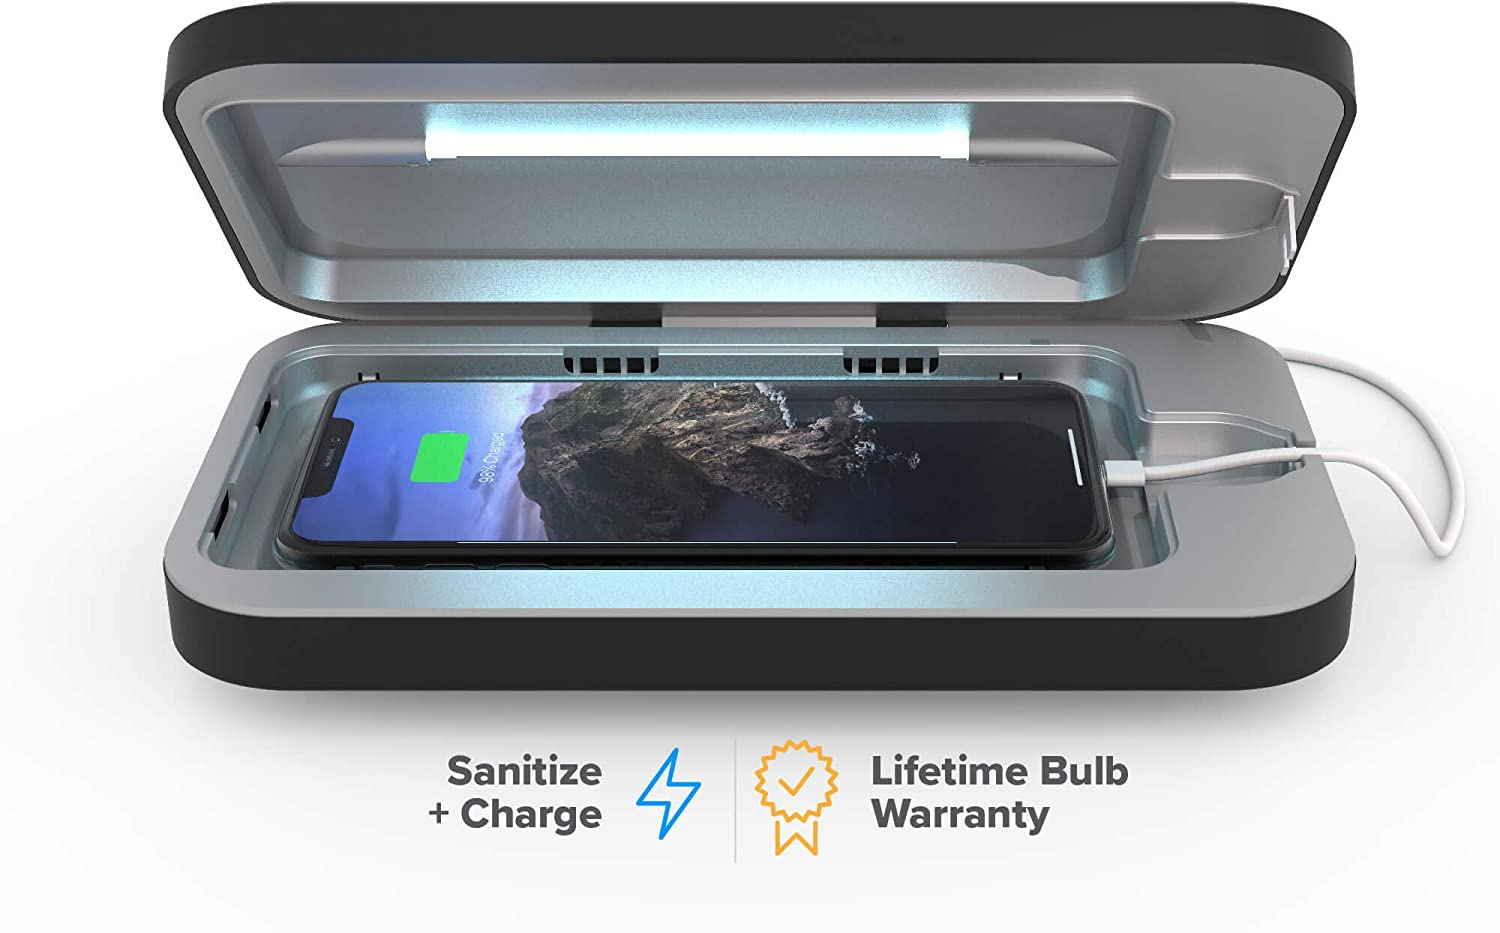 UV sanitizer for cell phone